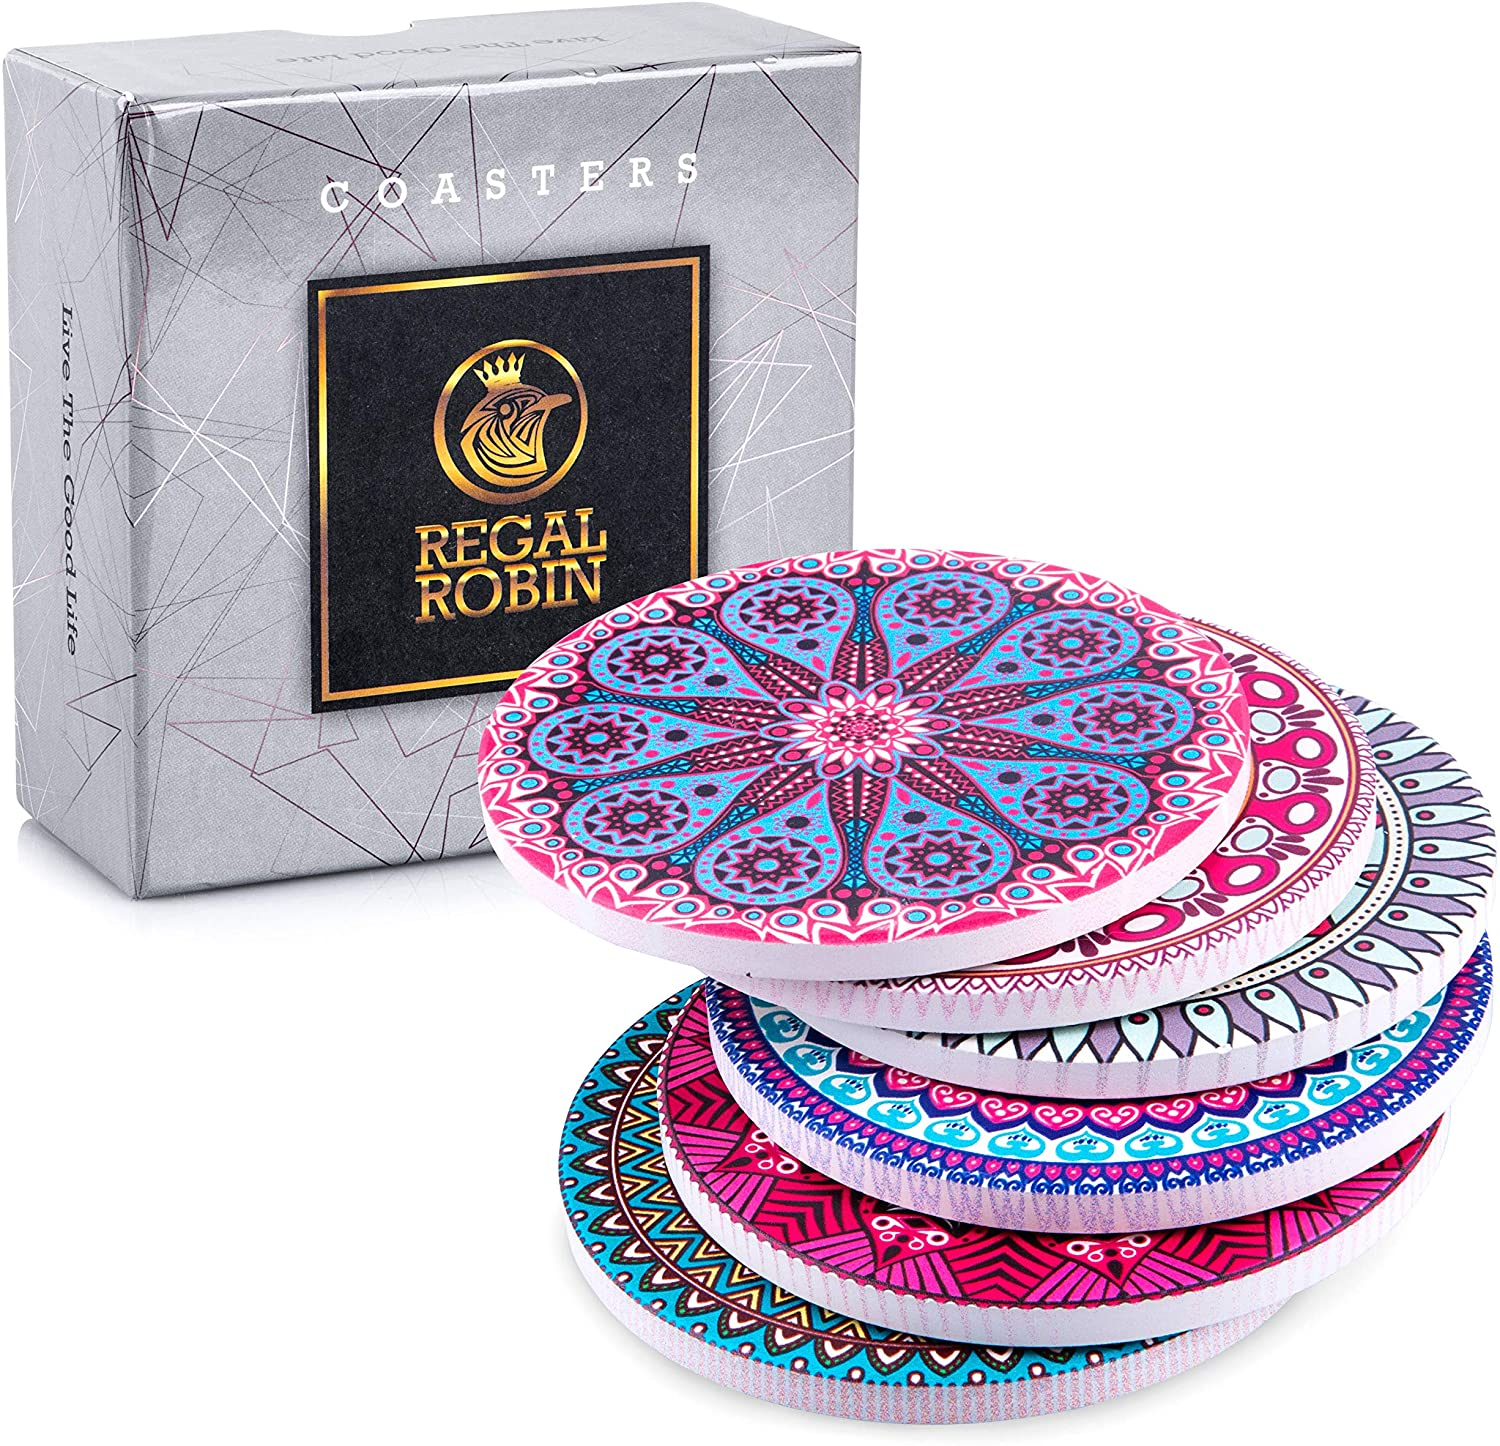 Absorbent Ceramic Mandala Coasters for Drinks: Regal Robin Drink Coaster Set - Cute 4 Inch Novelty Coasters with Cork Back for Home, Office, Restaurant - Coffee Table, Desk, Kitchen Decor - Set of 6